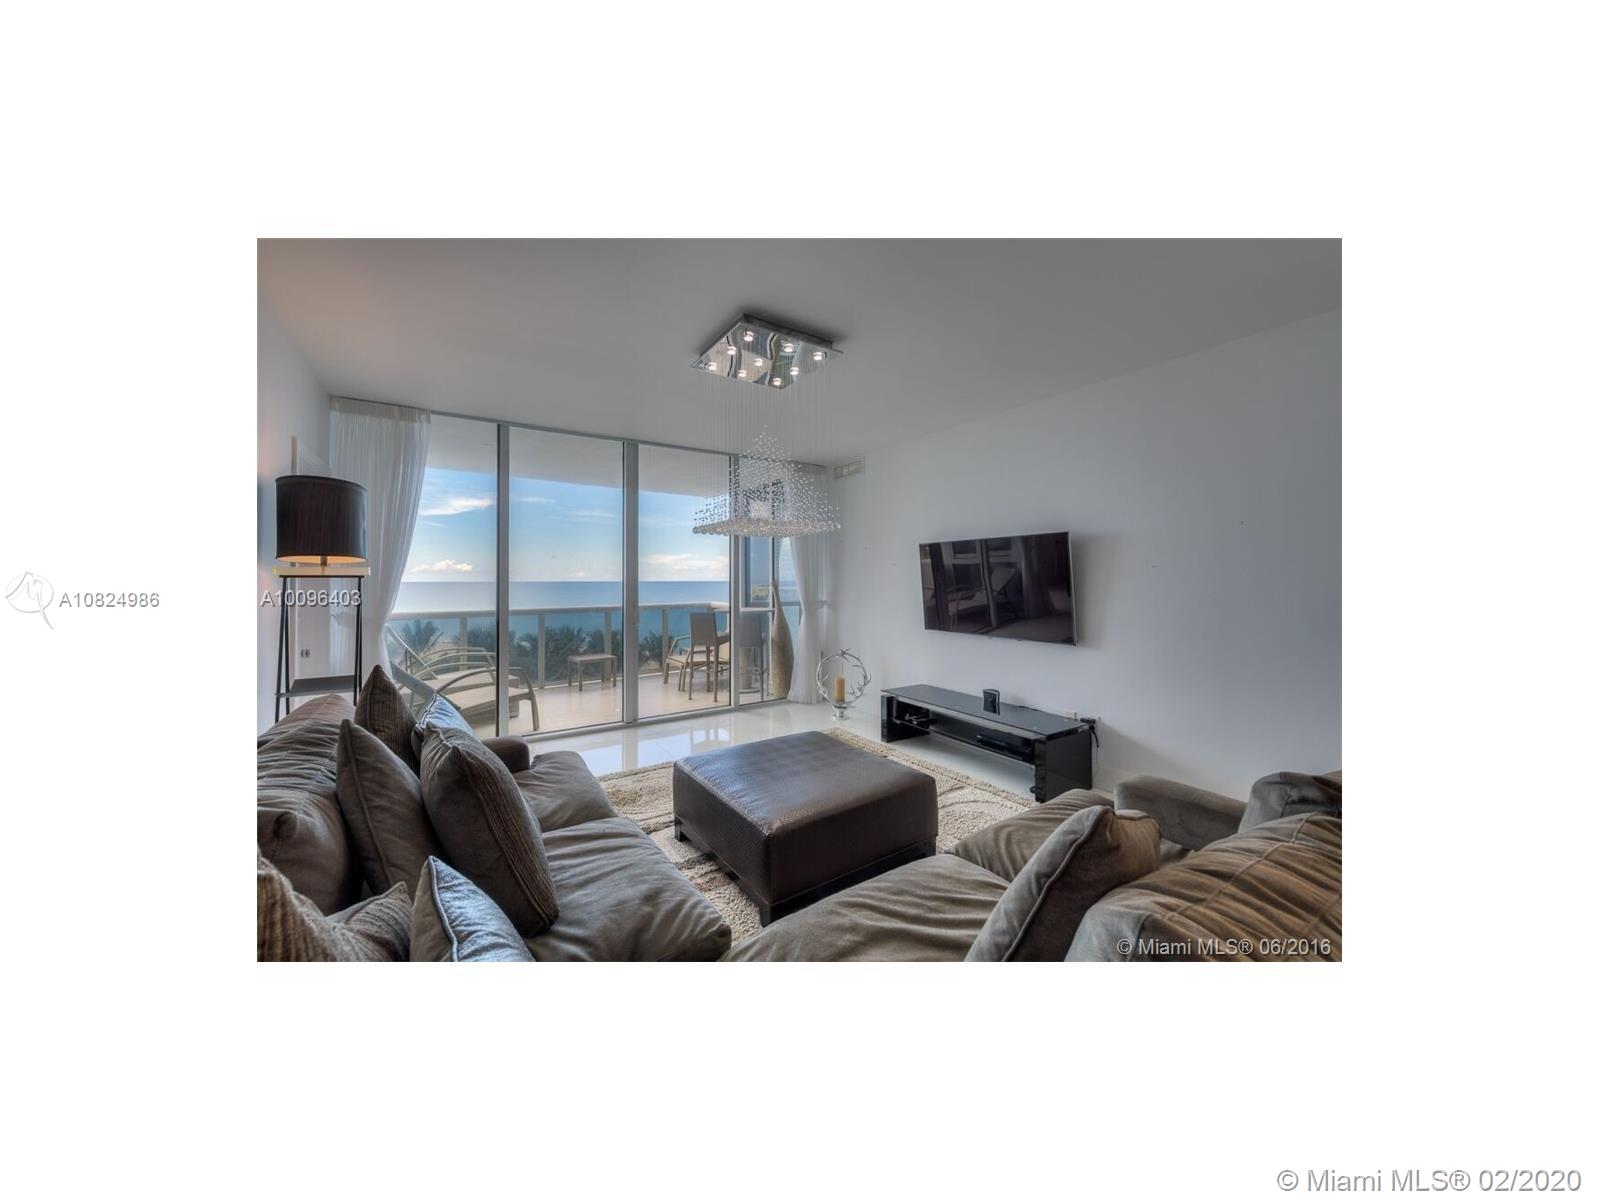 This stunning Sunny Isles Beach residence in Trump Royale is a 3 bed / 3.5 bath masterpiece and comes exquisitely finished & furnished. Unit features are open concept living area, Sub Zero refrigerator, quartz countertops, large walk-in closets, window treatments and expansive ocean views from every room. Enjoy Trump's 5-star resort style living with 3 on-site restaurants, 24/7 room service, concierge, beach club, 3 pools, 4 hot tubs, tennis courts, dog park, luxury spa, gym, free valet and much more